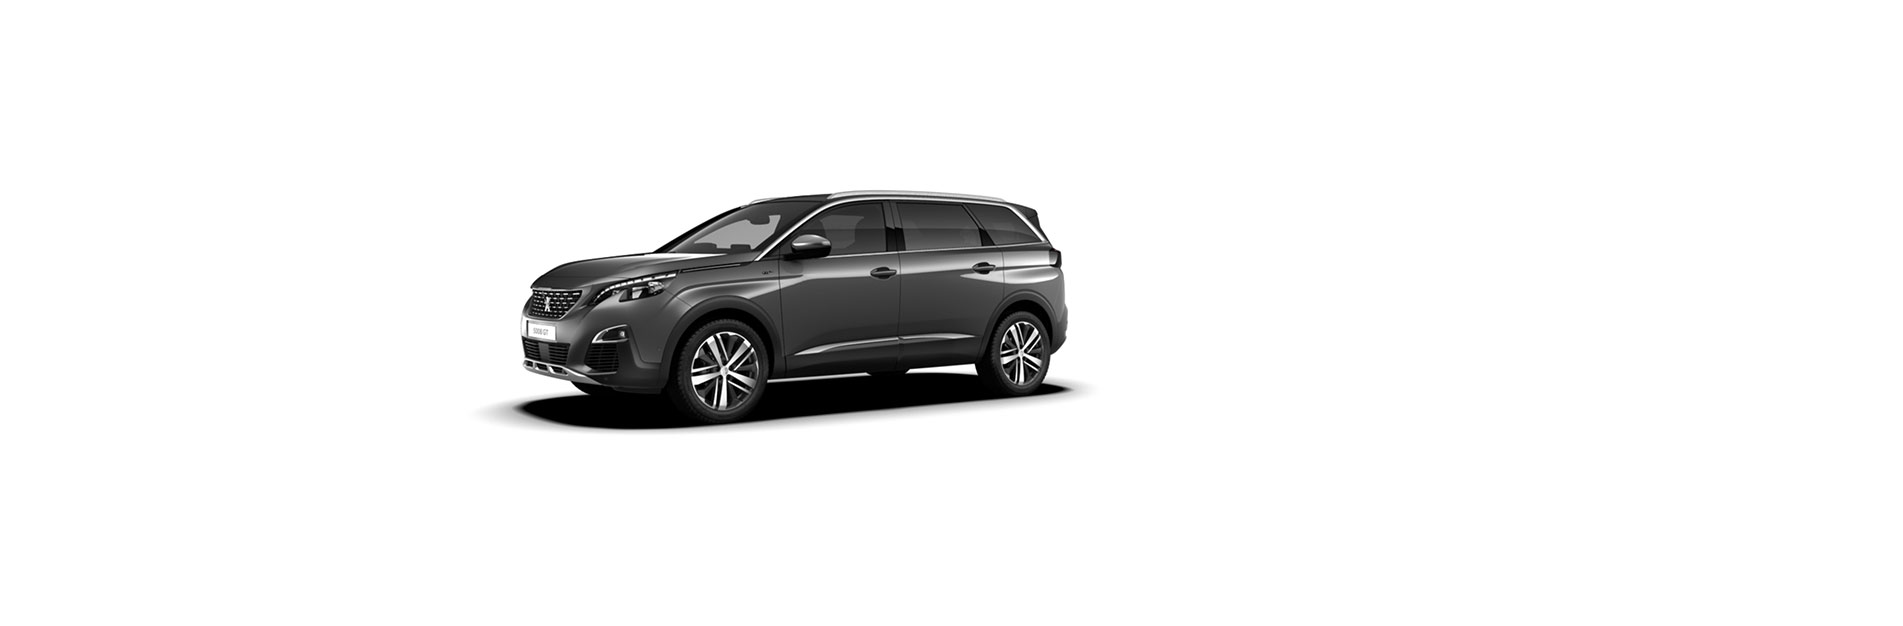 peugeot-5008-suv-new-car-sales-head